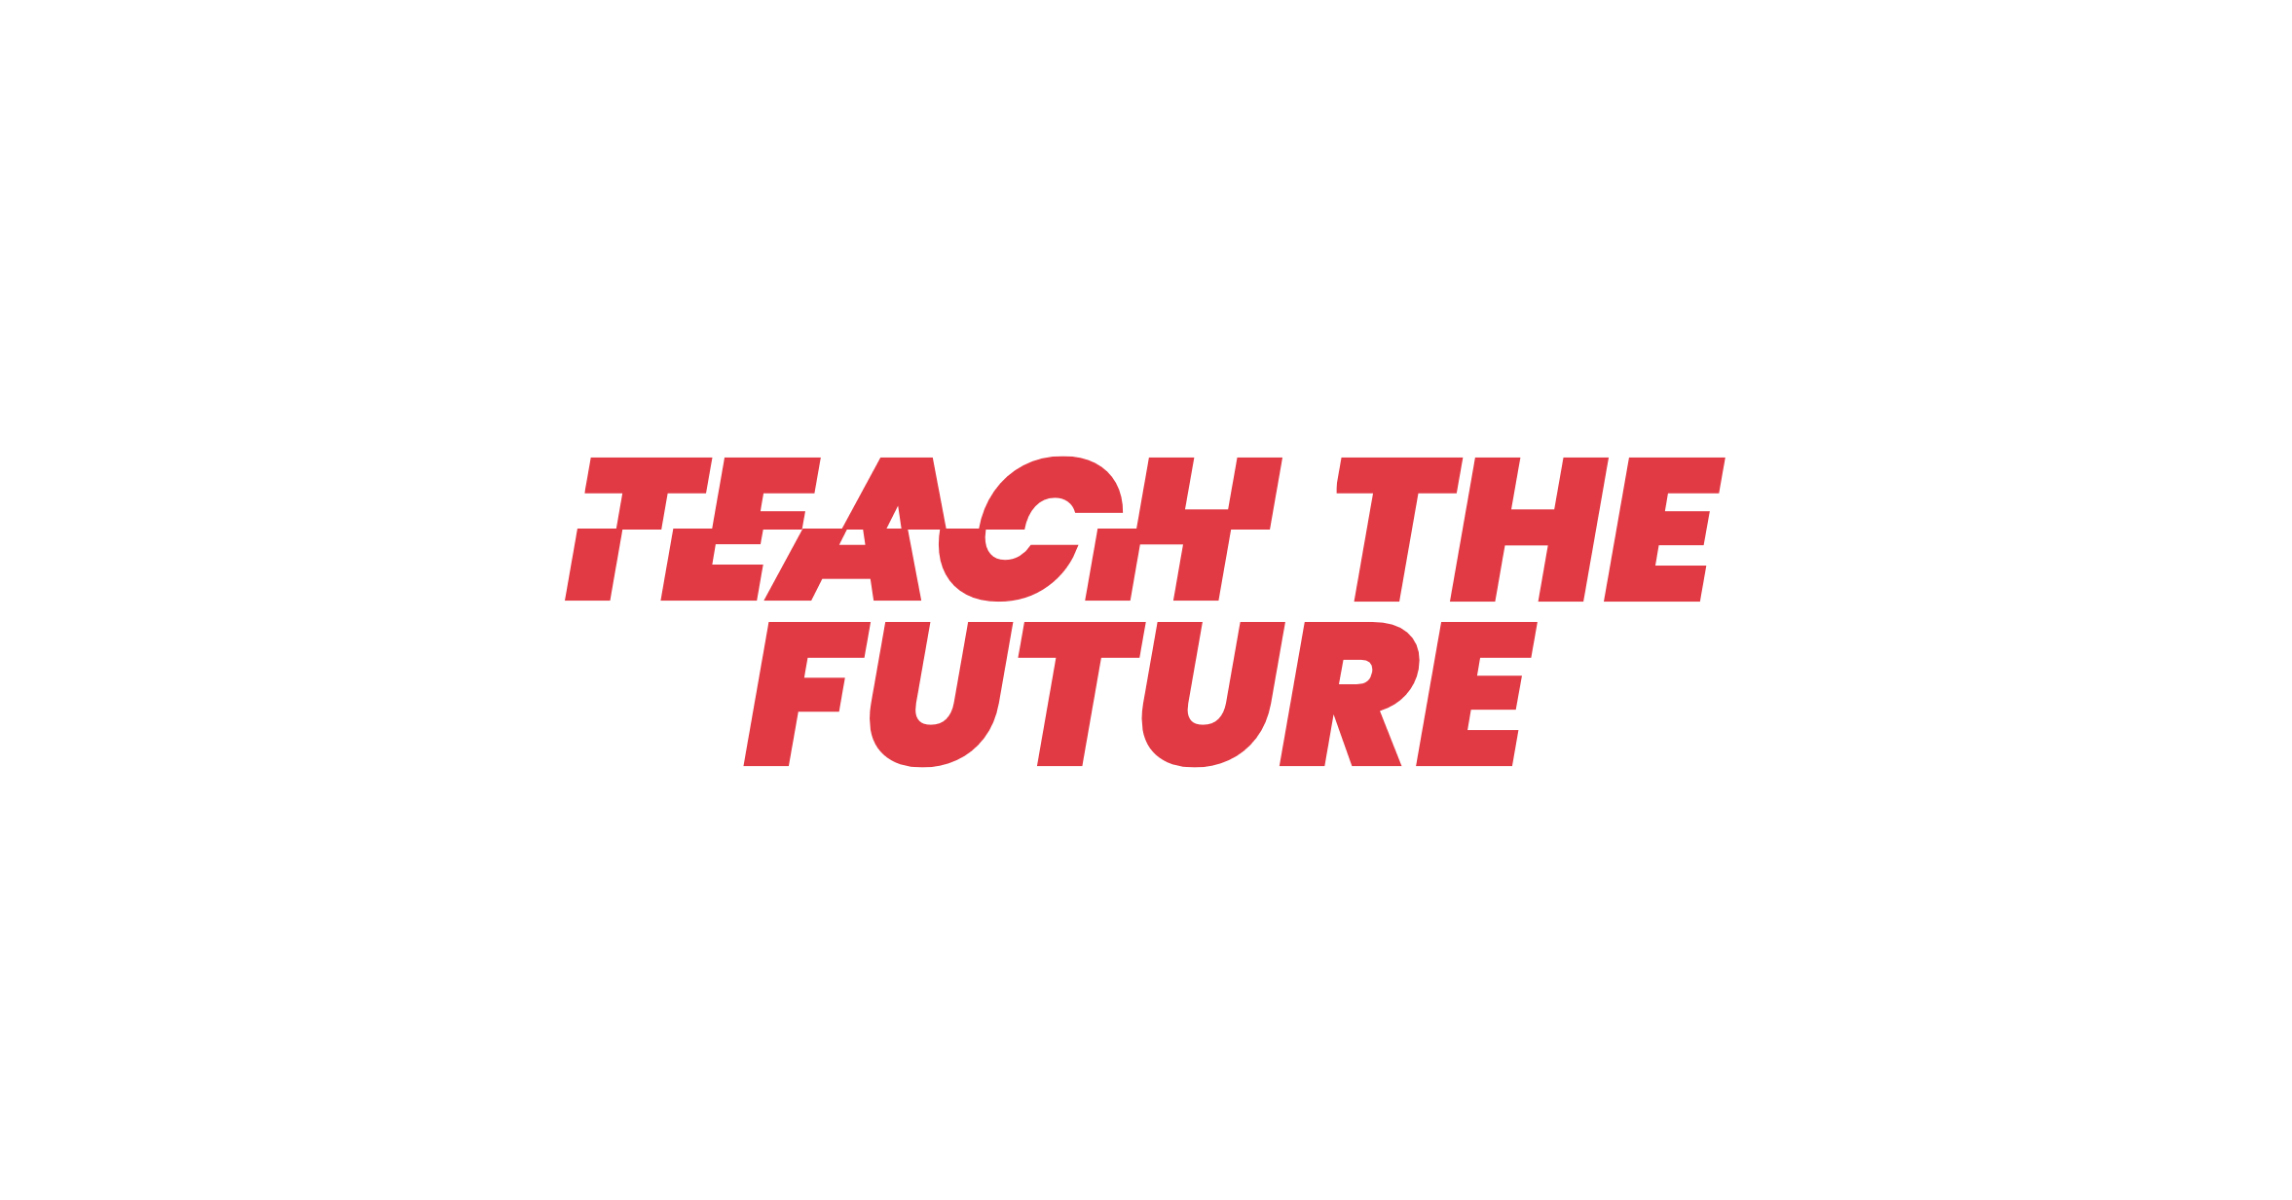 Teach the future